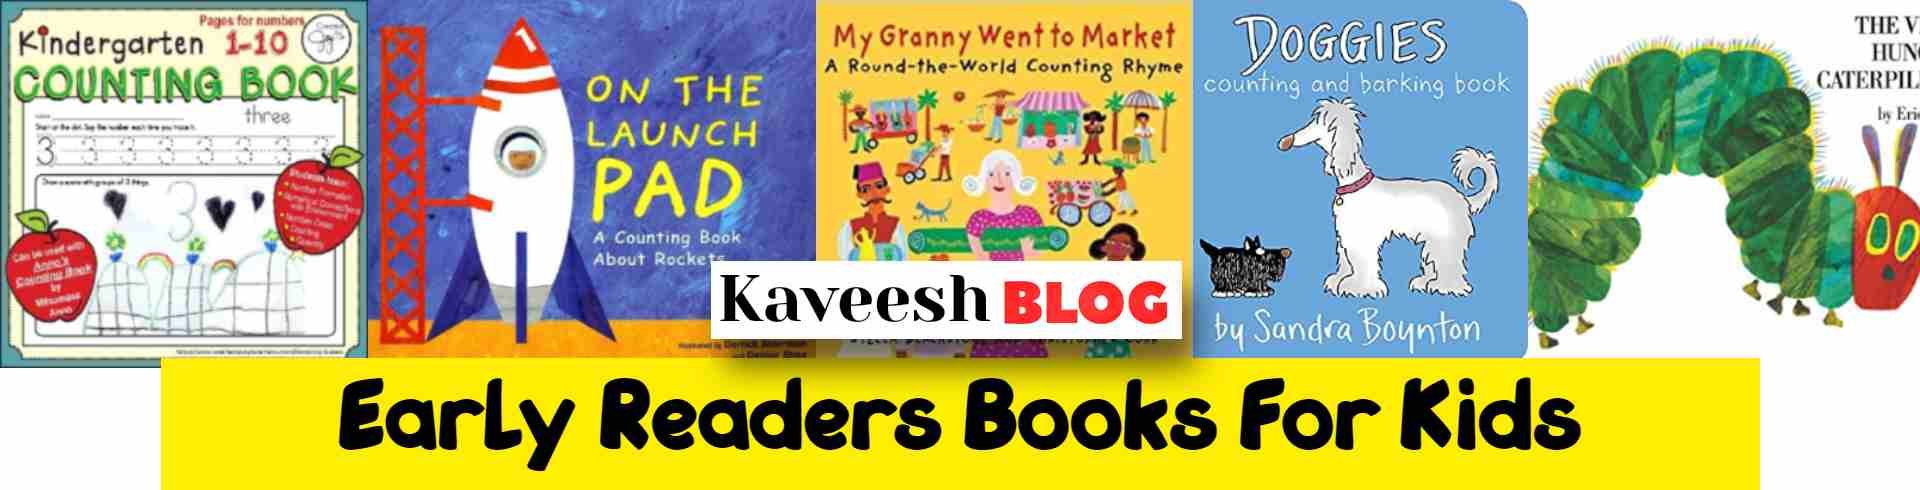 Early Readers Books for kids-kaveesh.com